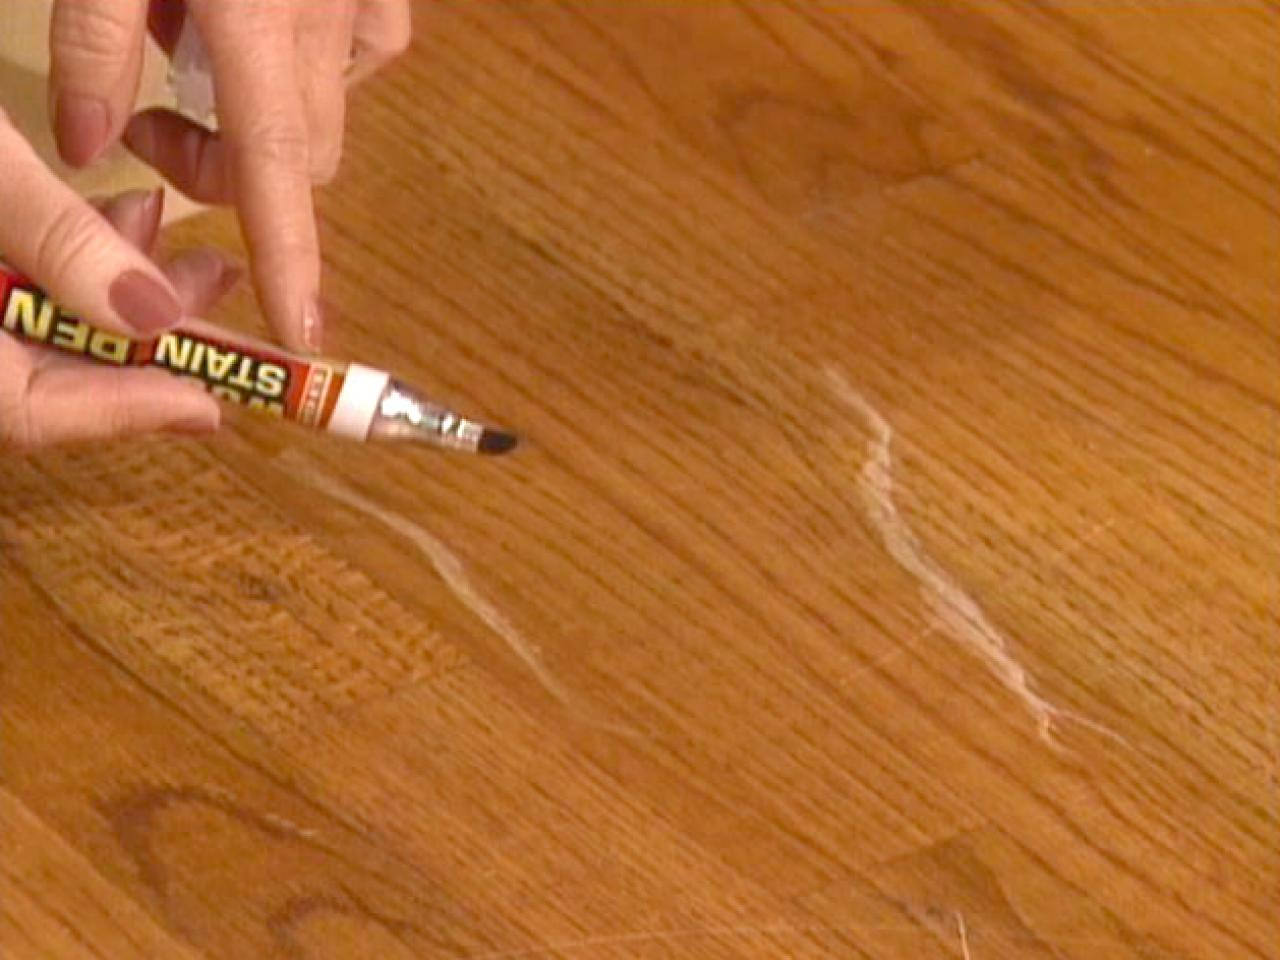 felt tip touchup pen uses wood stain for scratches - How To Touch Up Wood Floors How-tos DIY